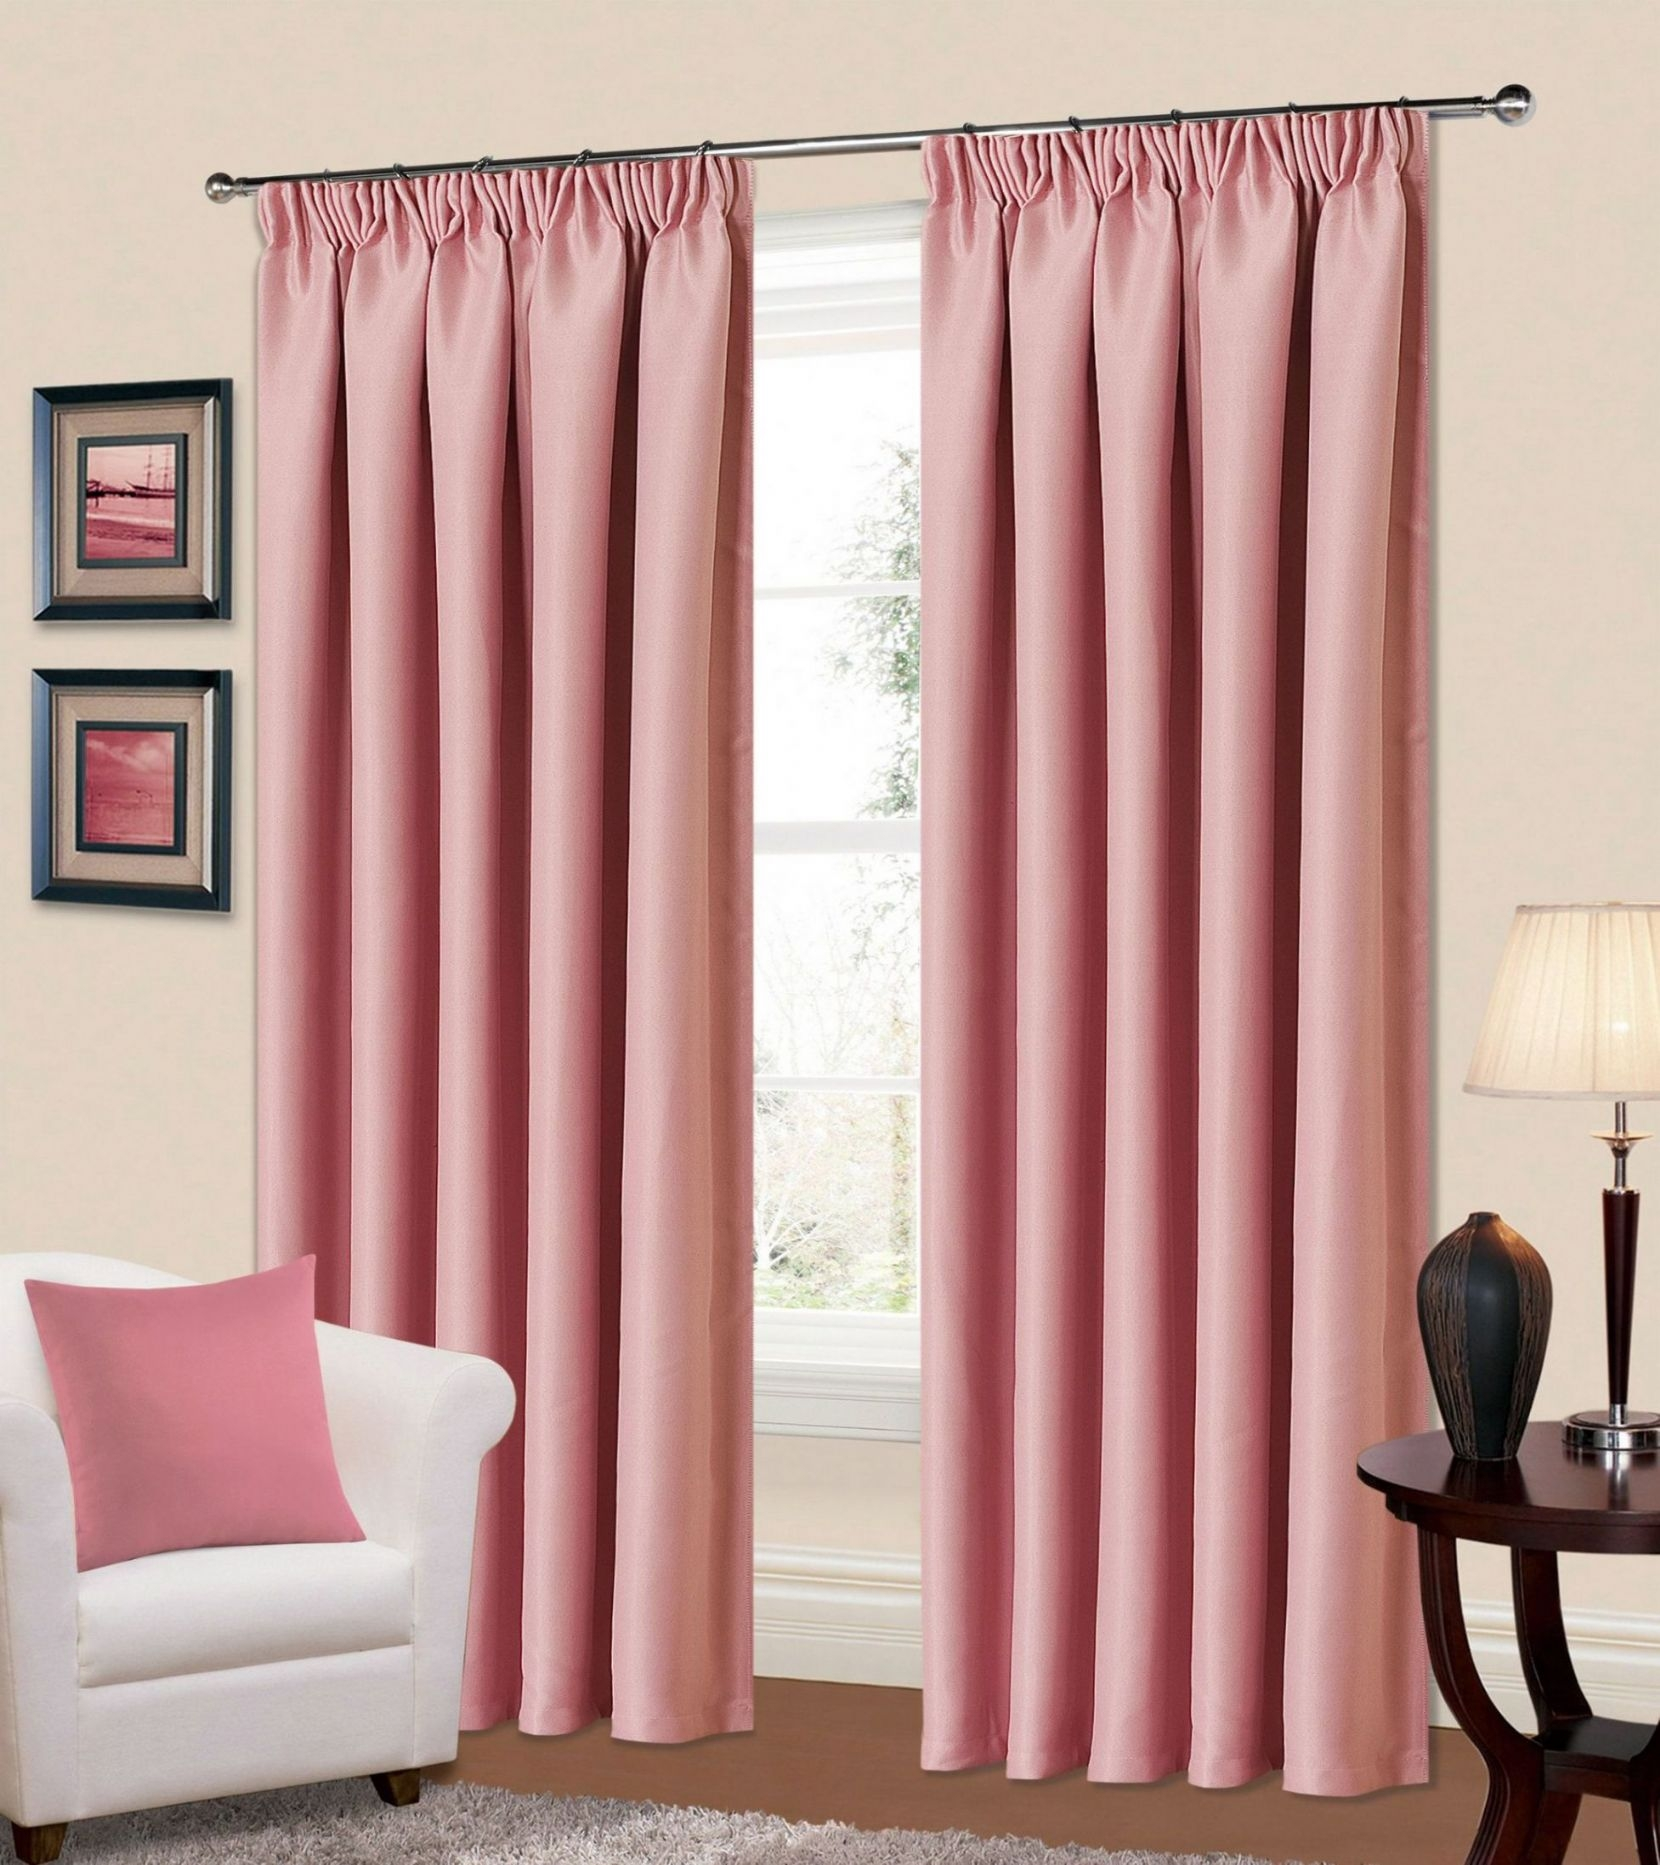 Fascinating Thick Bedroom Curtains Also For Curtain Idea Short Intended For Short Drop Ready Made Curtains (View 4 of 15)